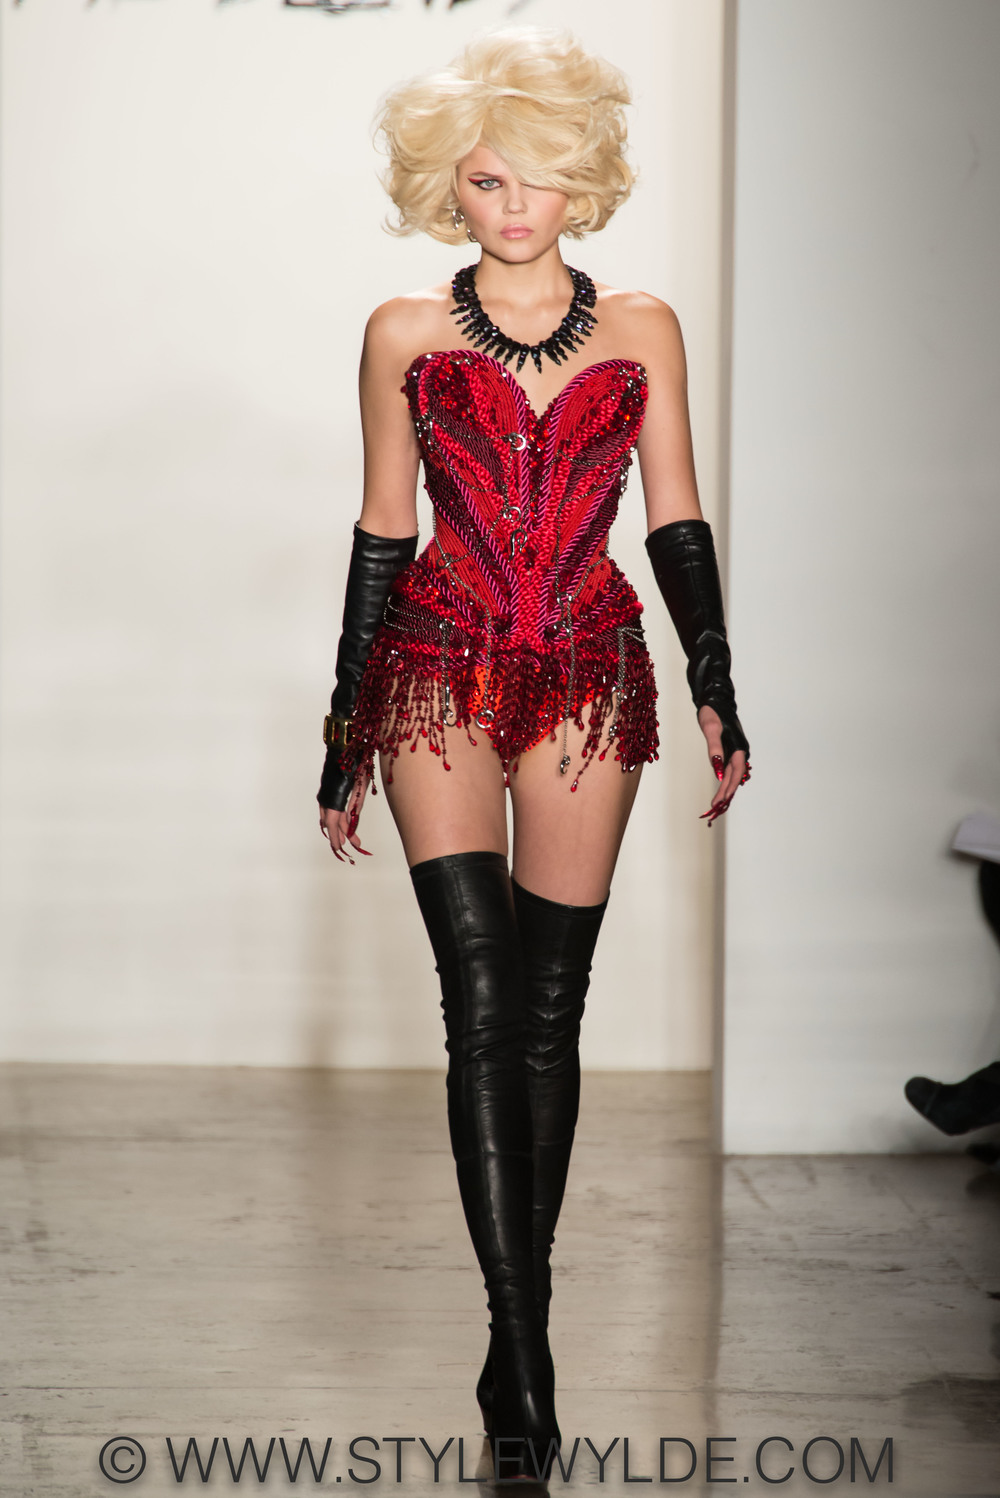 stylewylde_The_Blonds_FW_2013-4.jpg